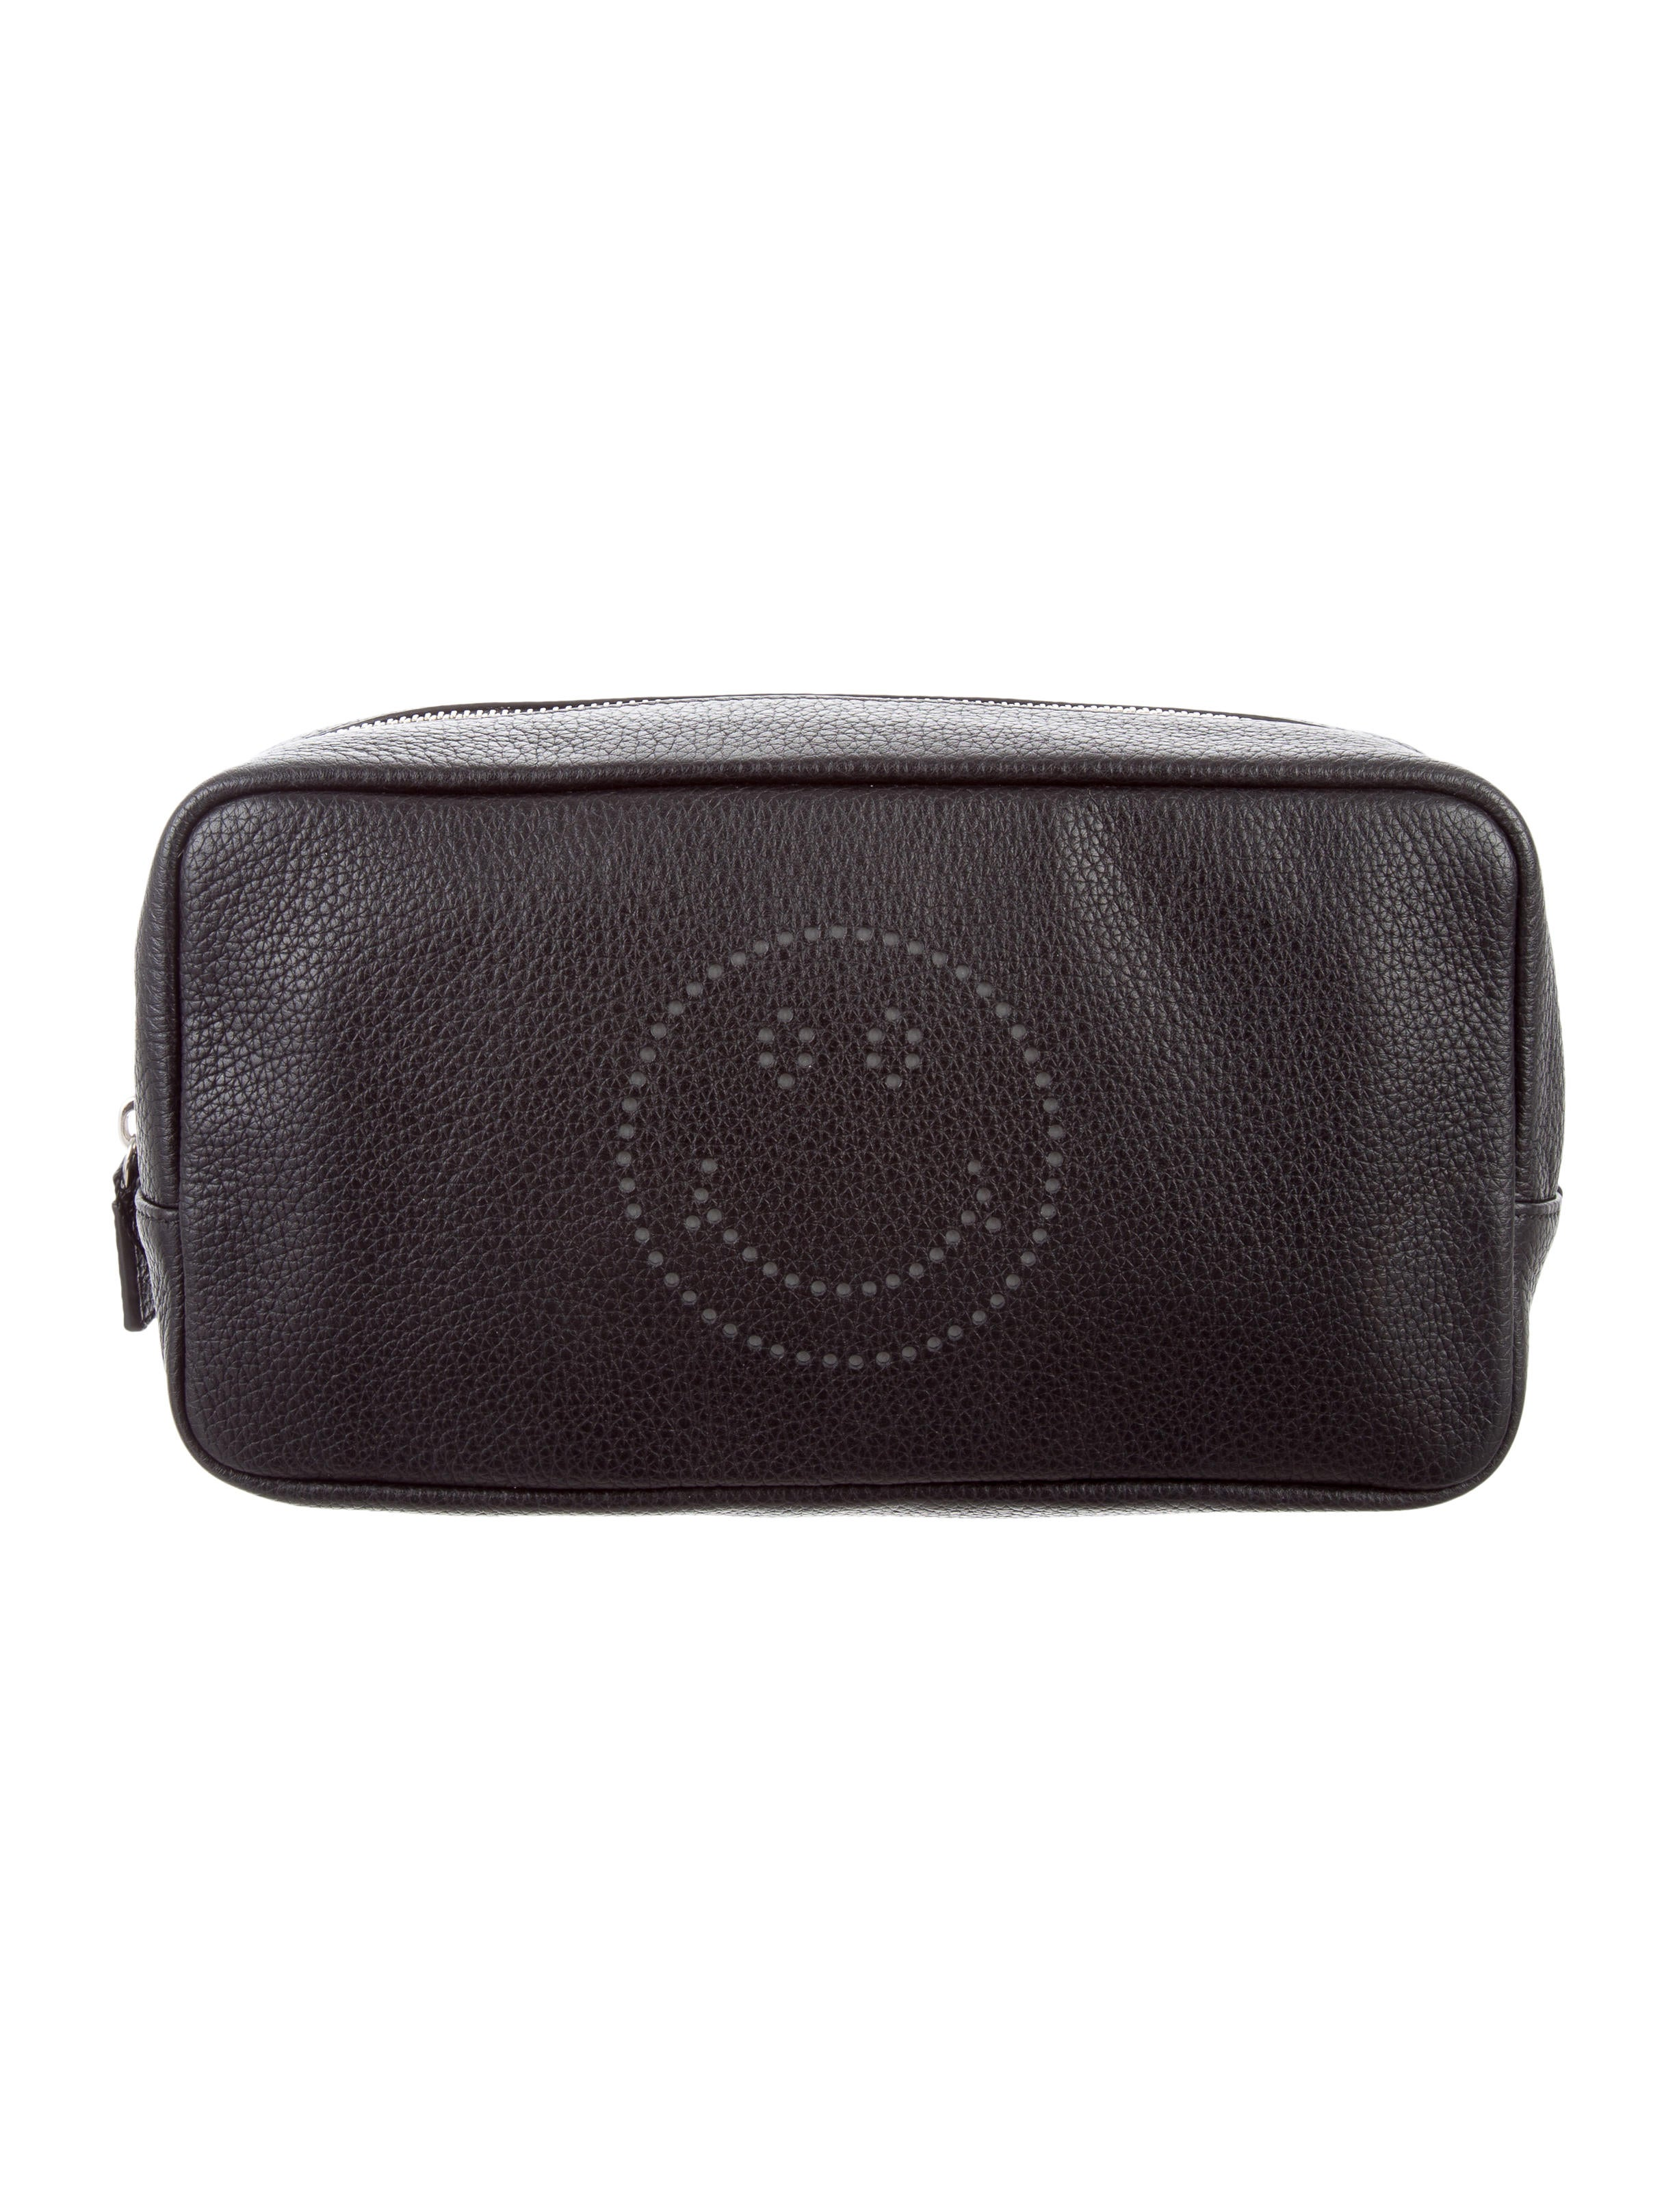 Perforated Smiley Leather Toiletry Bag W Tags